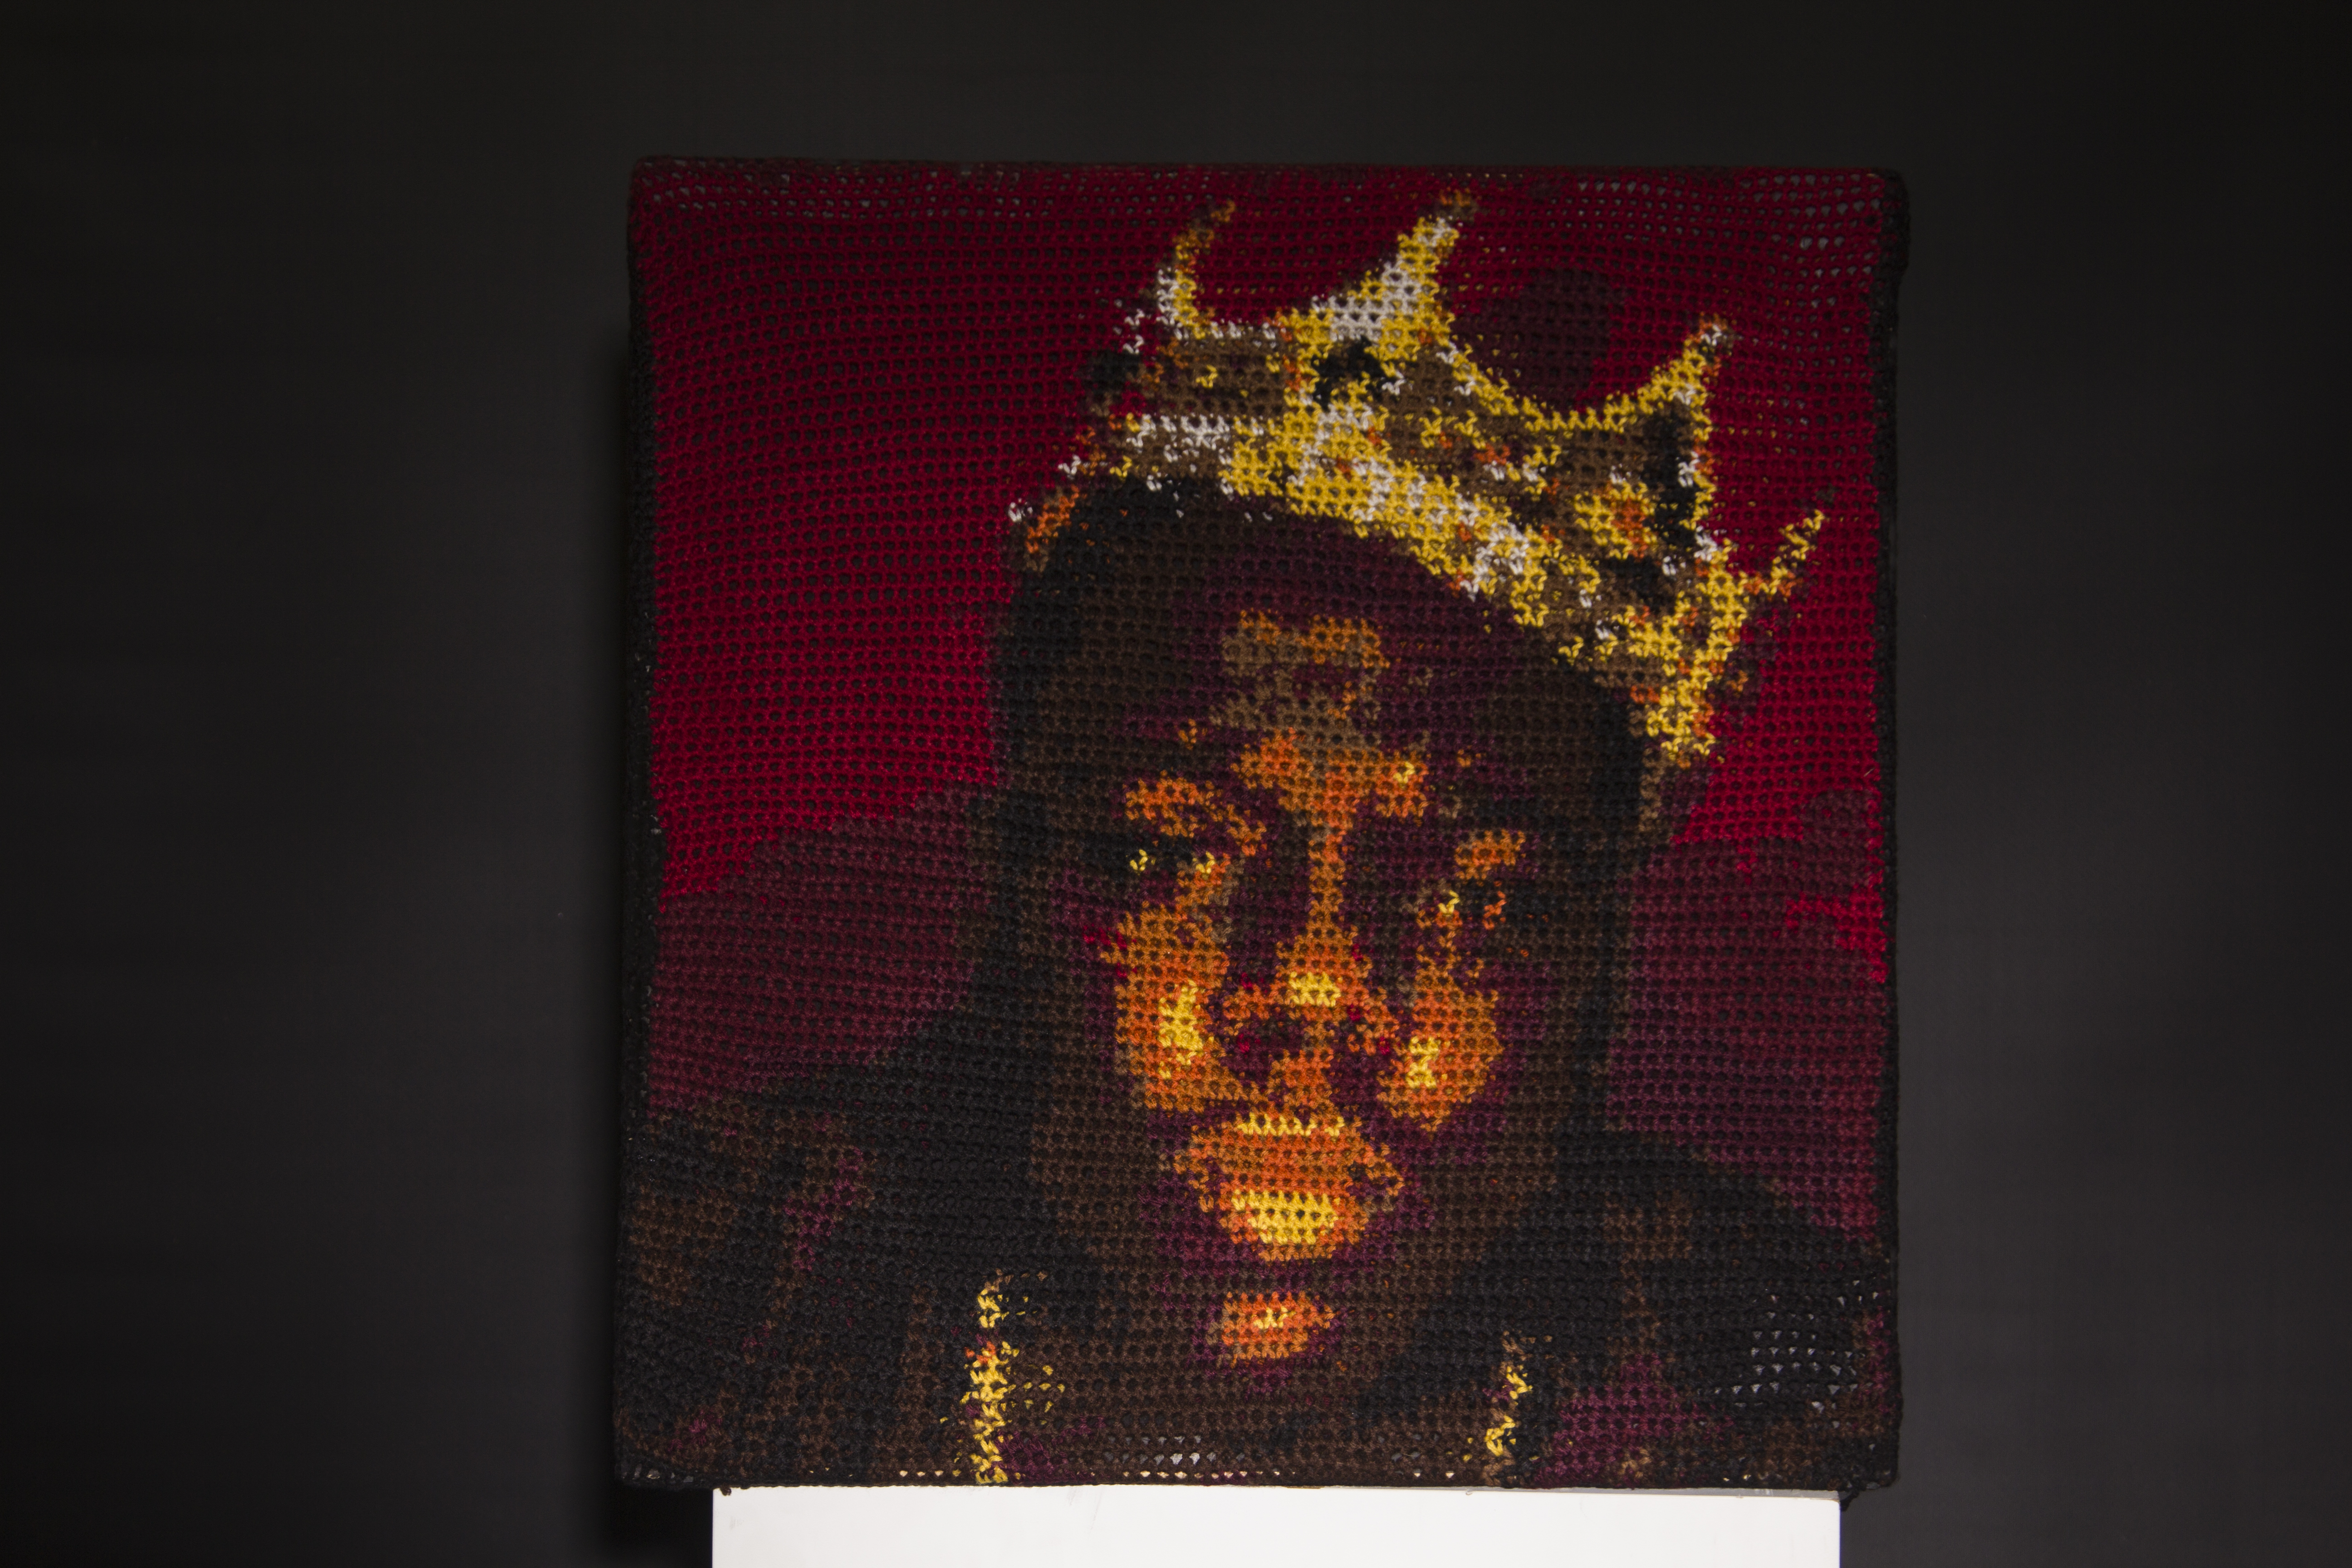 Hand crocheted portrait of Christopher Wallace